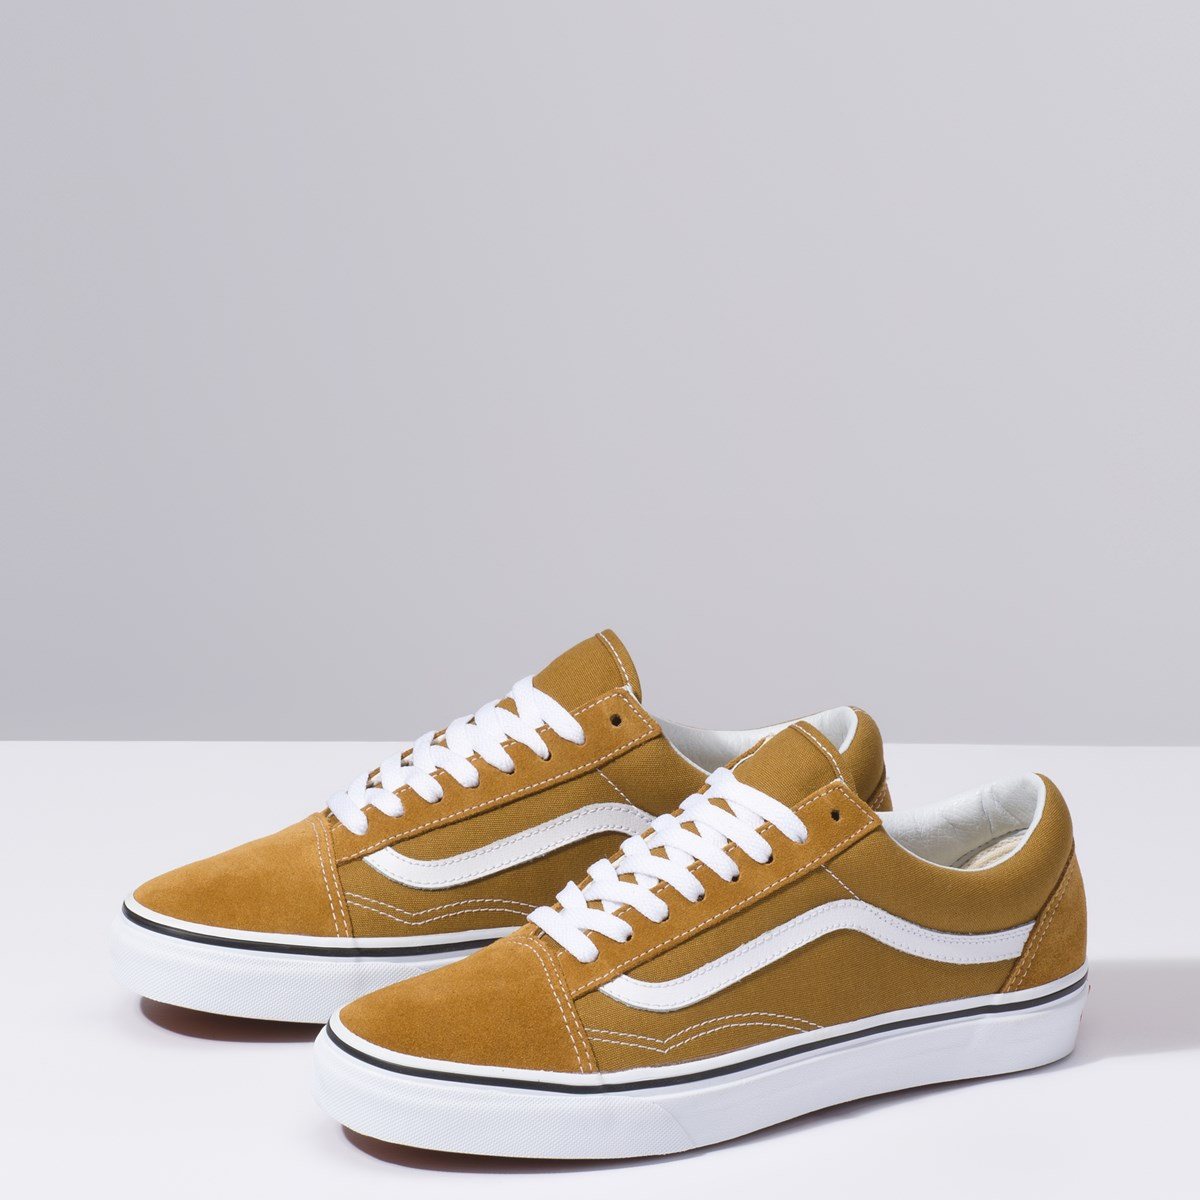 Men's Old Skool Sneaker in Mustard